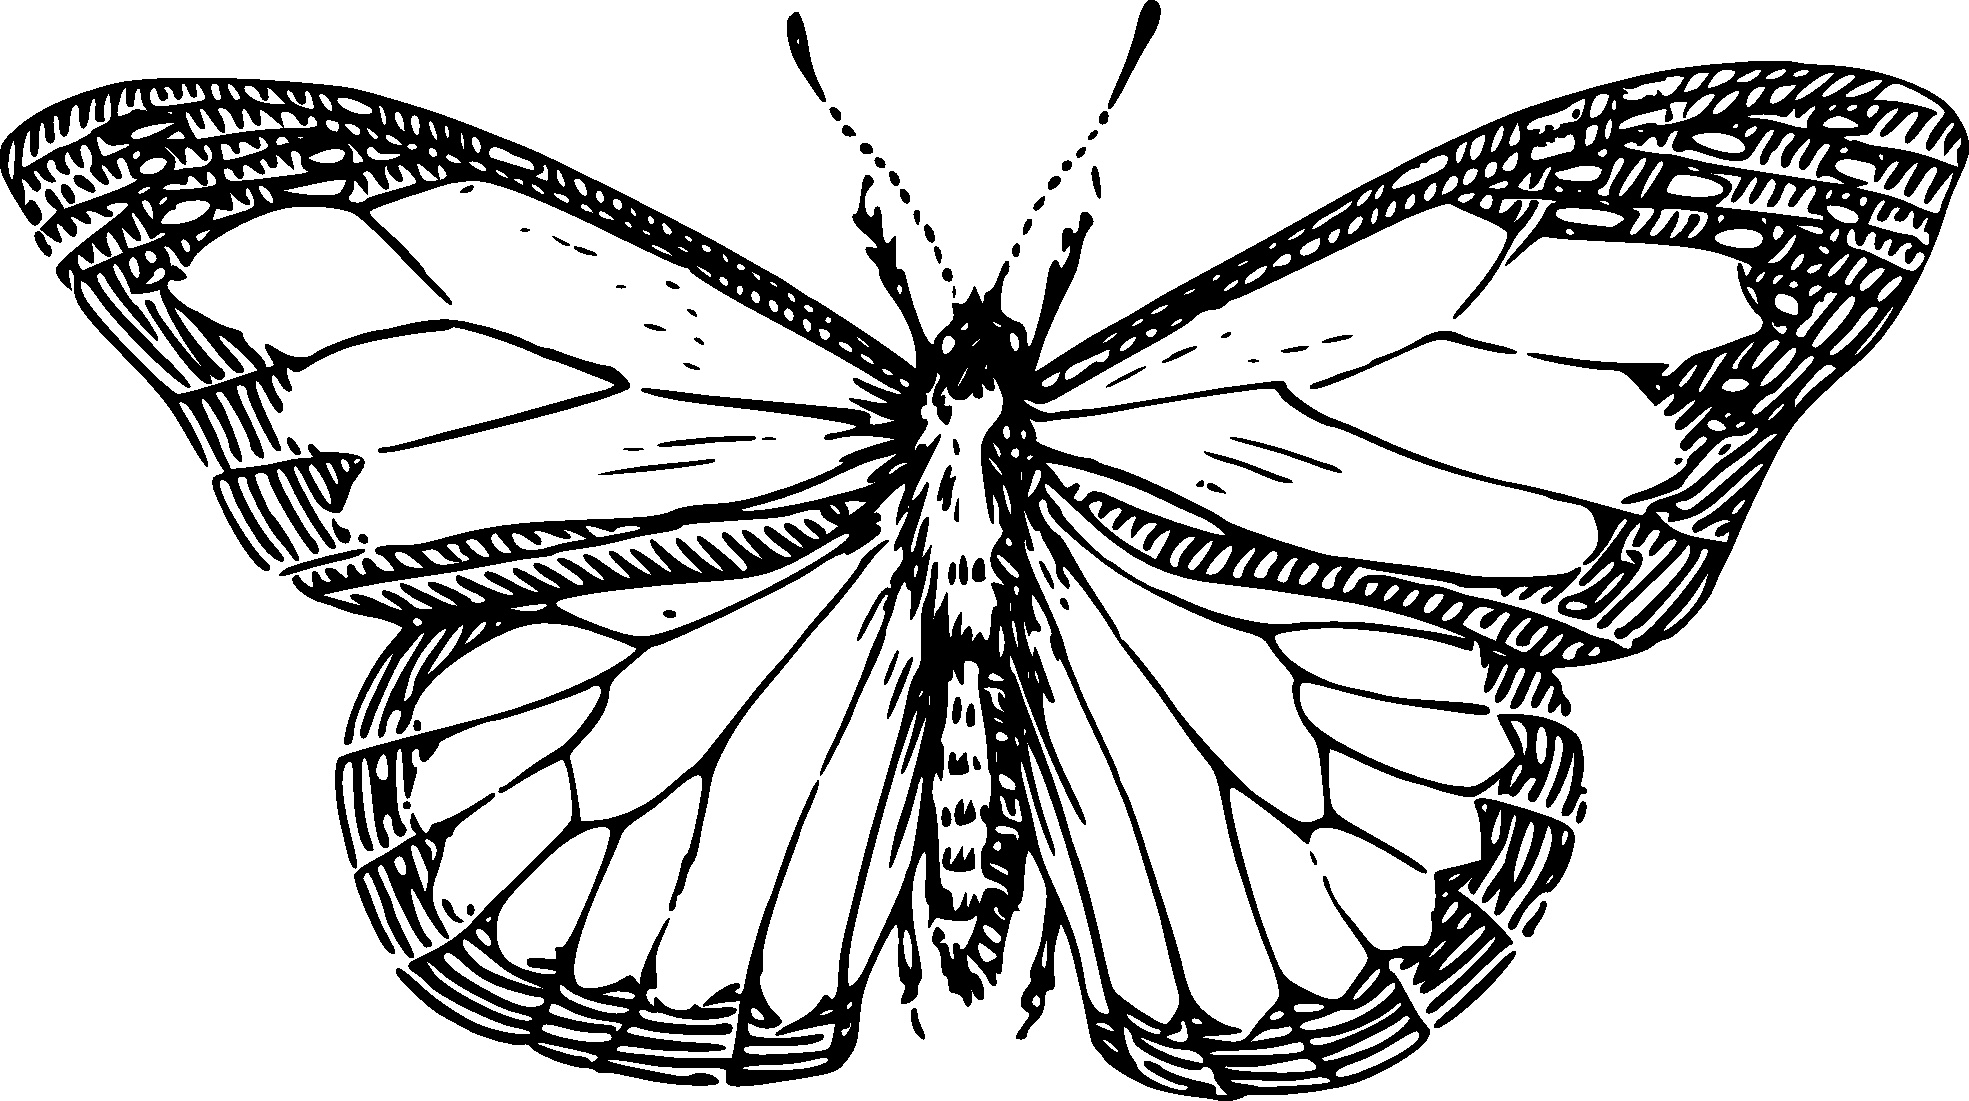 1969x1101 Arts Butterfly Outline Drawing Exquisite Free Butterfly Outline